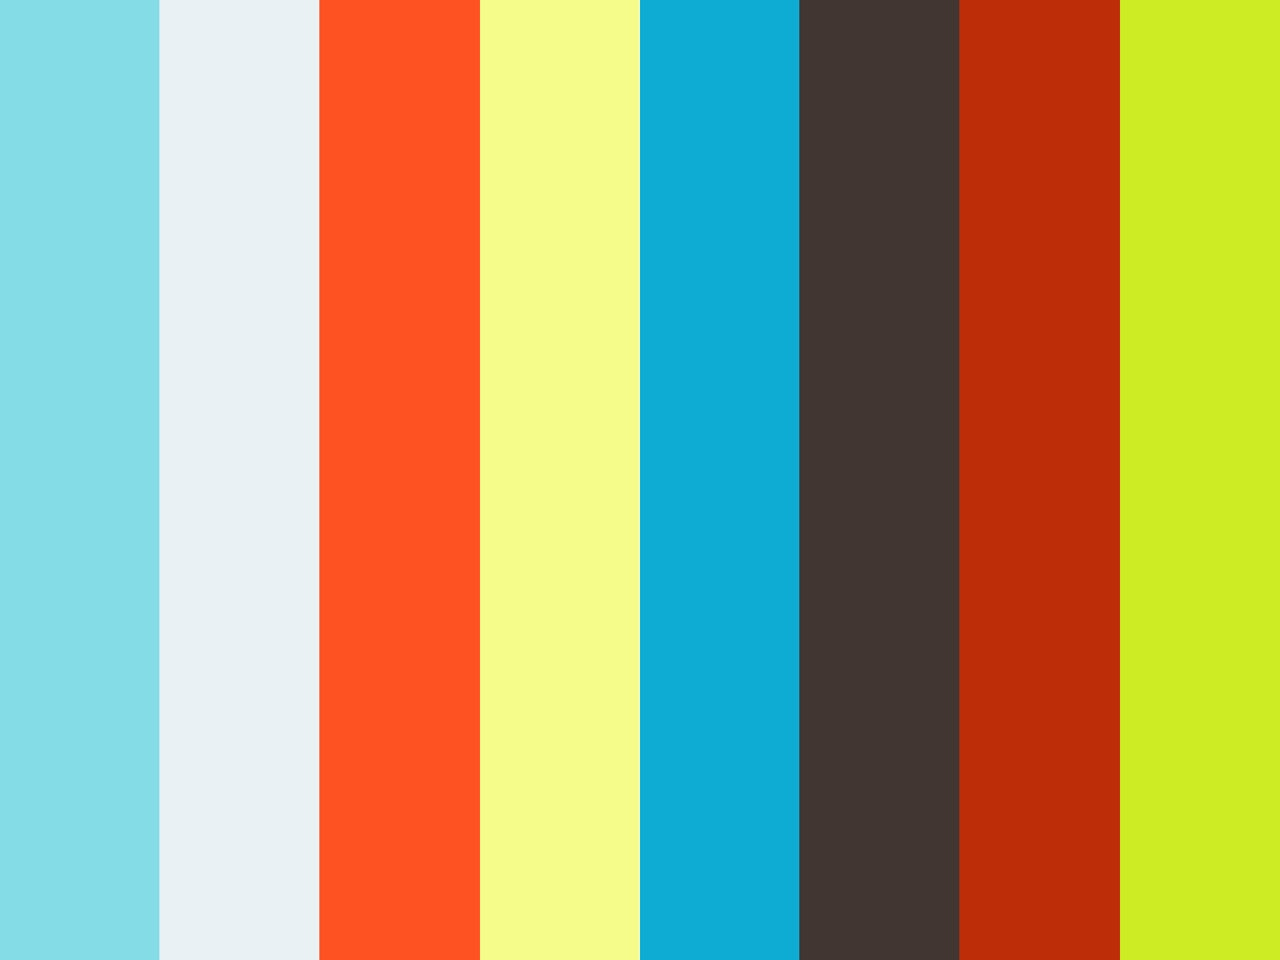 Town Of Saugus - Board Of Selectmen - January 6, 2016